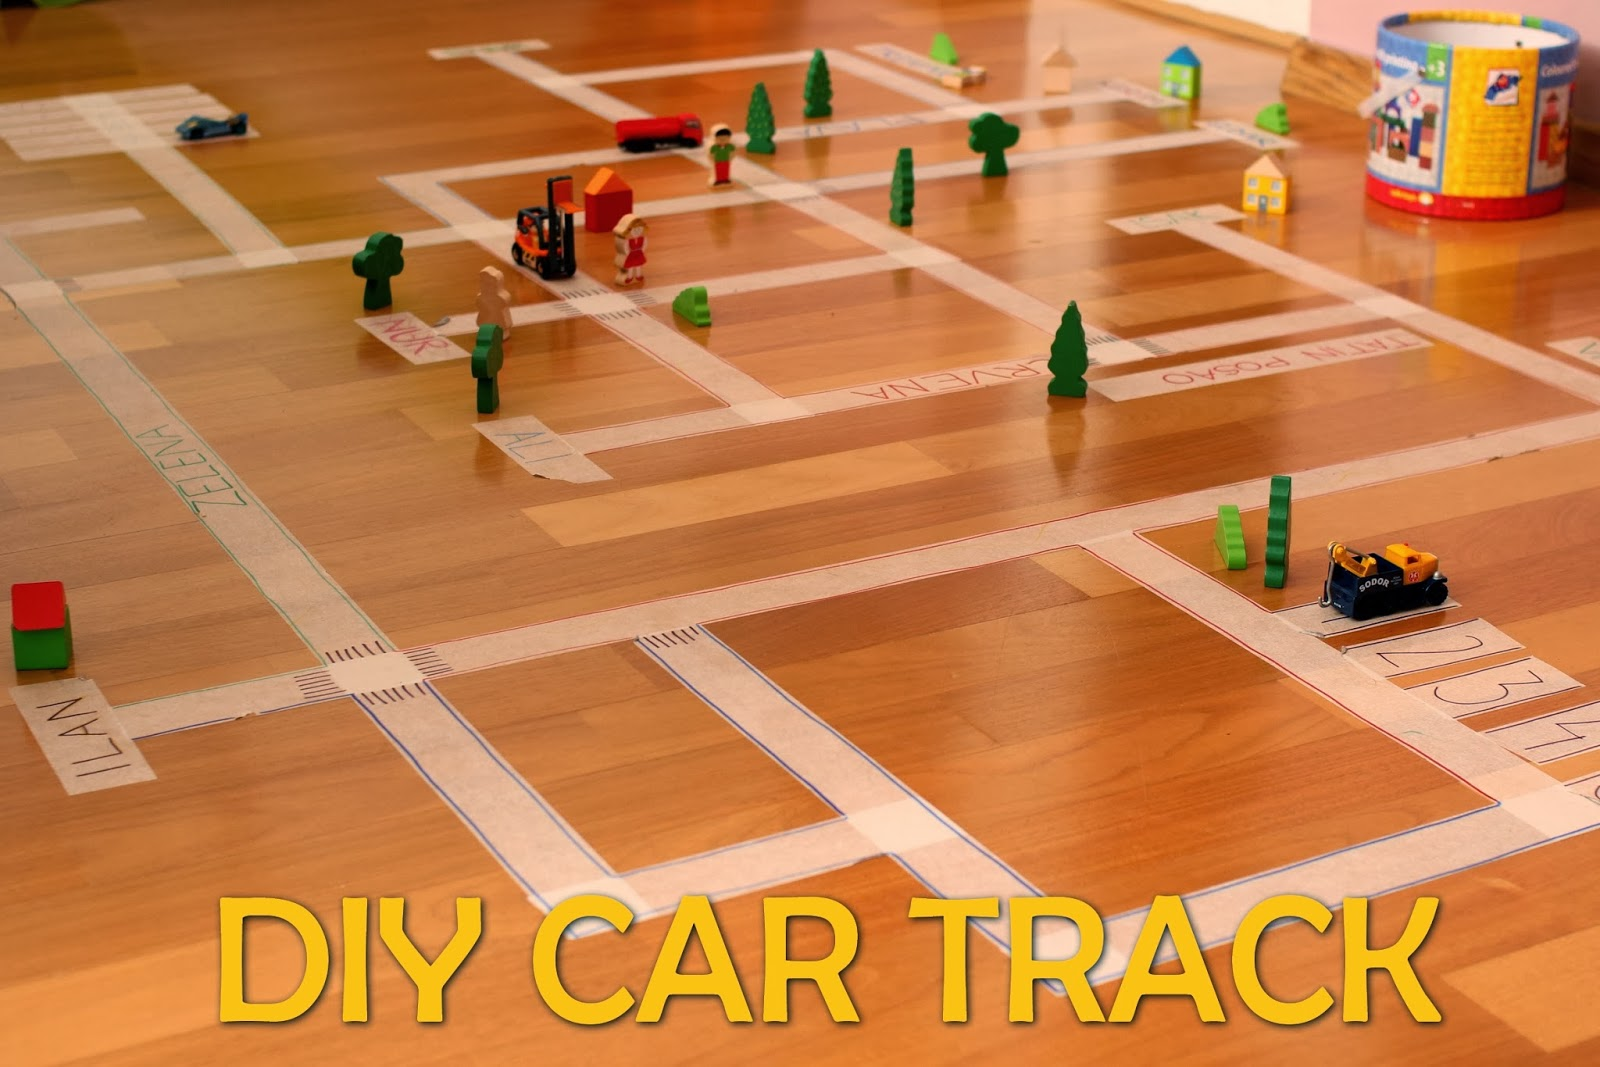 I AM duoMAMA: DIY CAR TRACK